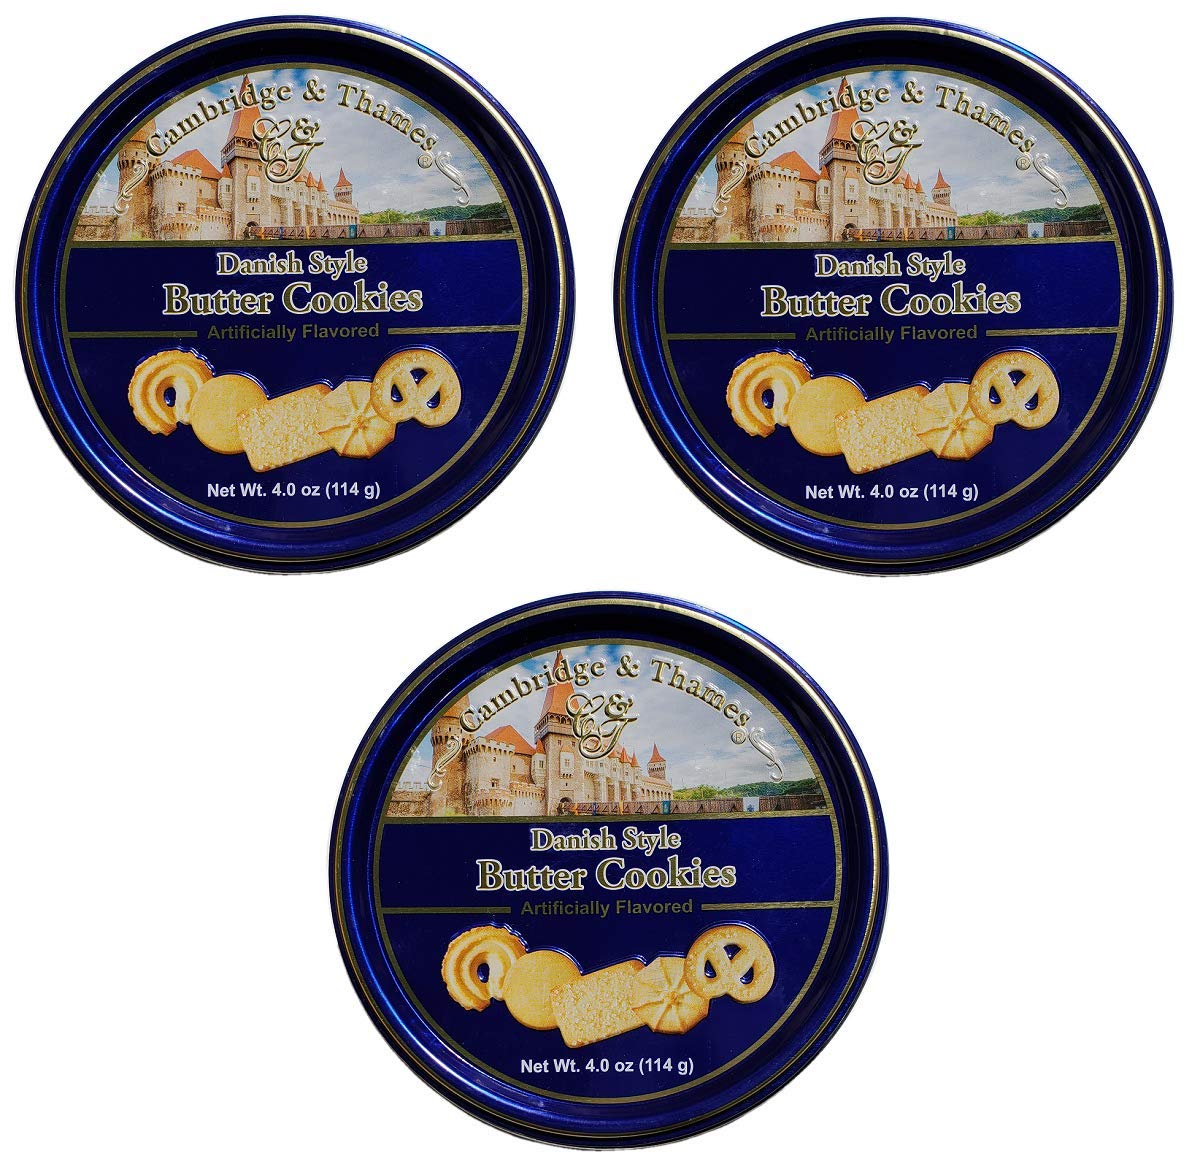 Cambridge and Thames Danish Butter Style Butter Cookies - 4 Oz. Mini Gift Tin - 3 Pack